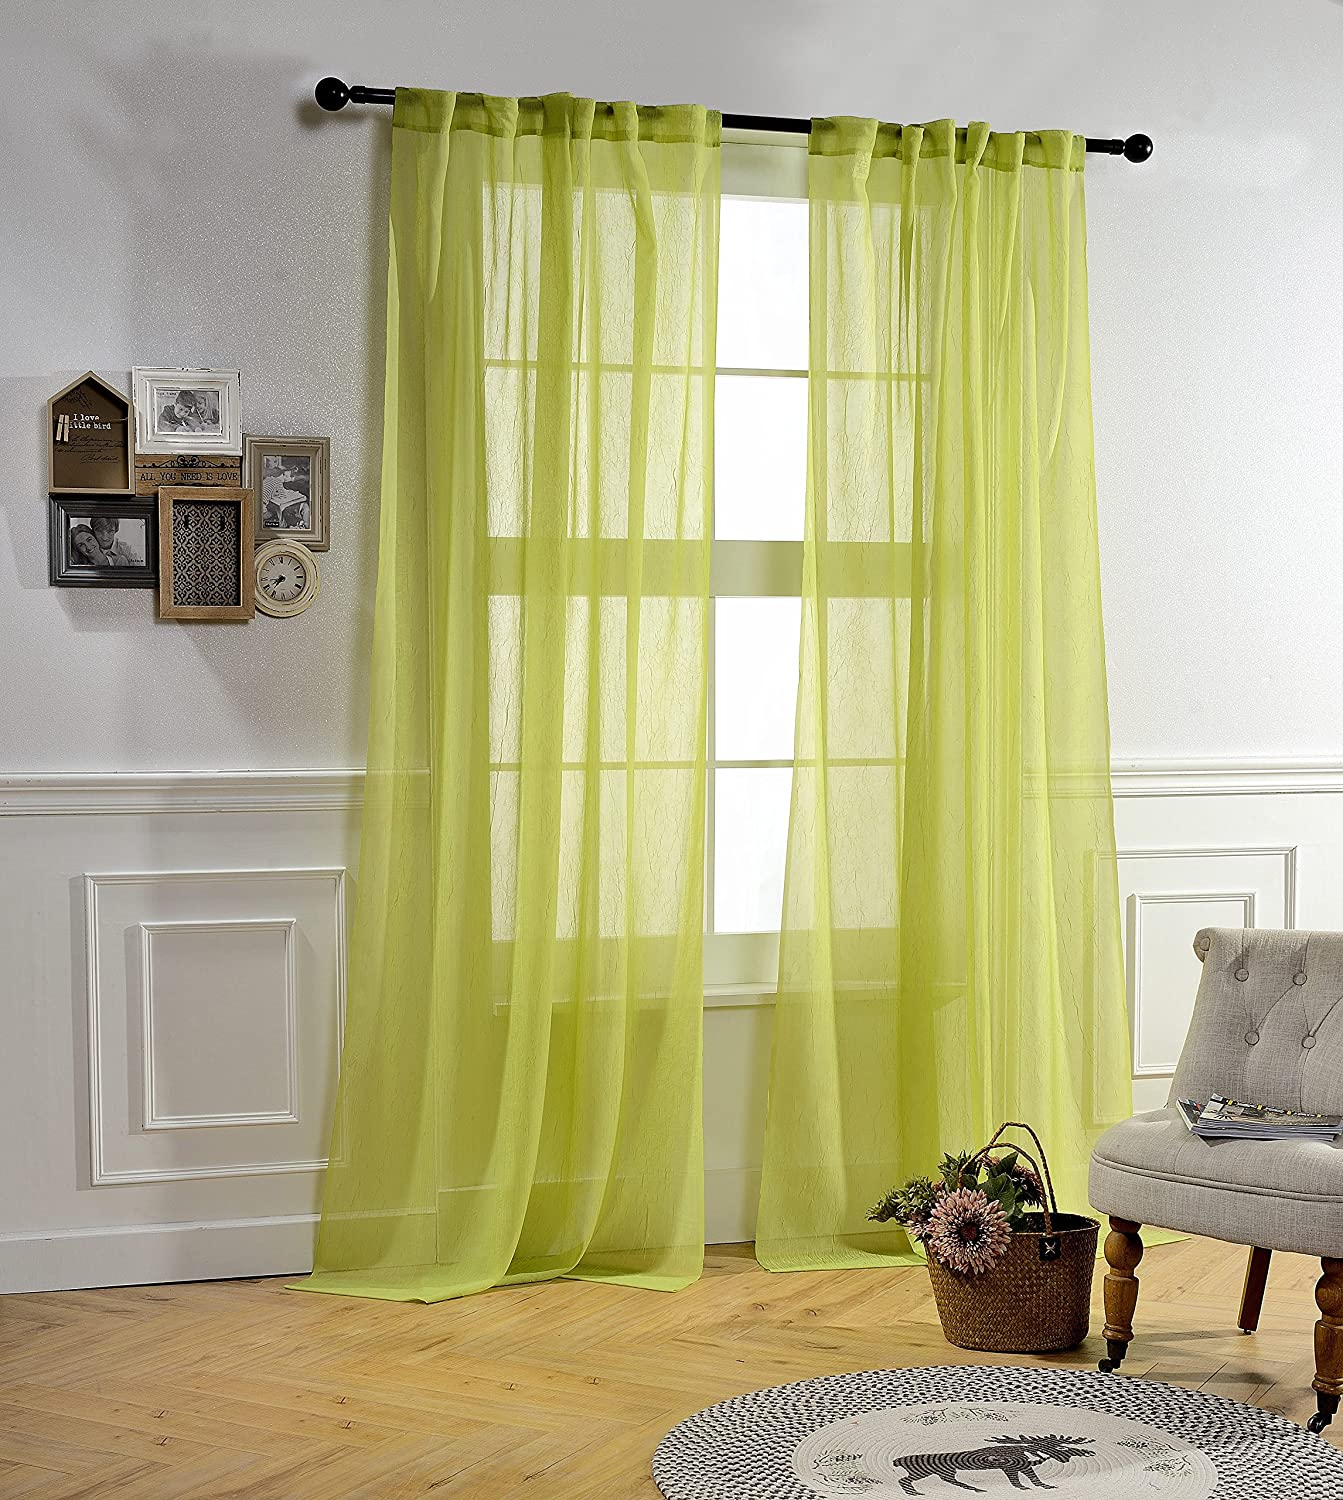 MYSKY HOME Back Tab and Rod Pocket Window Crushed Voile Sheer Curtains, Light Green